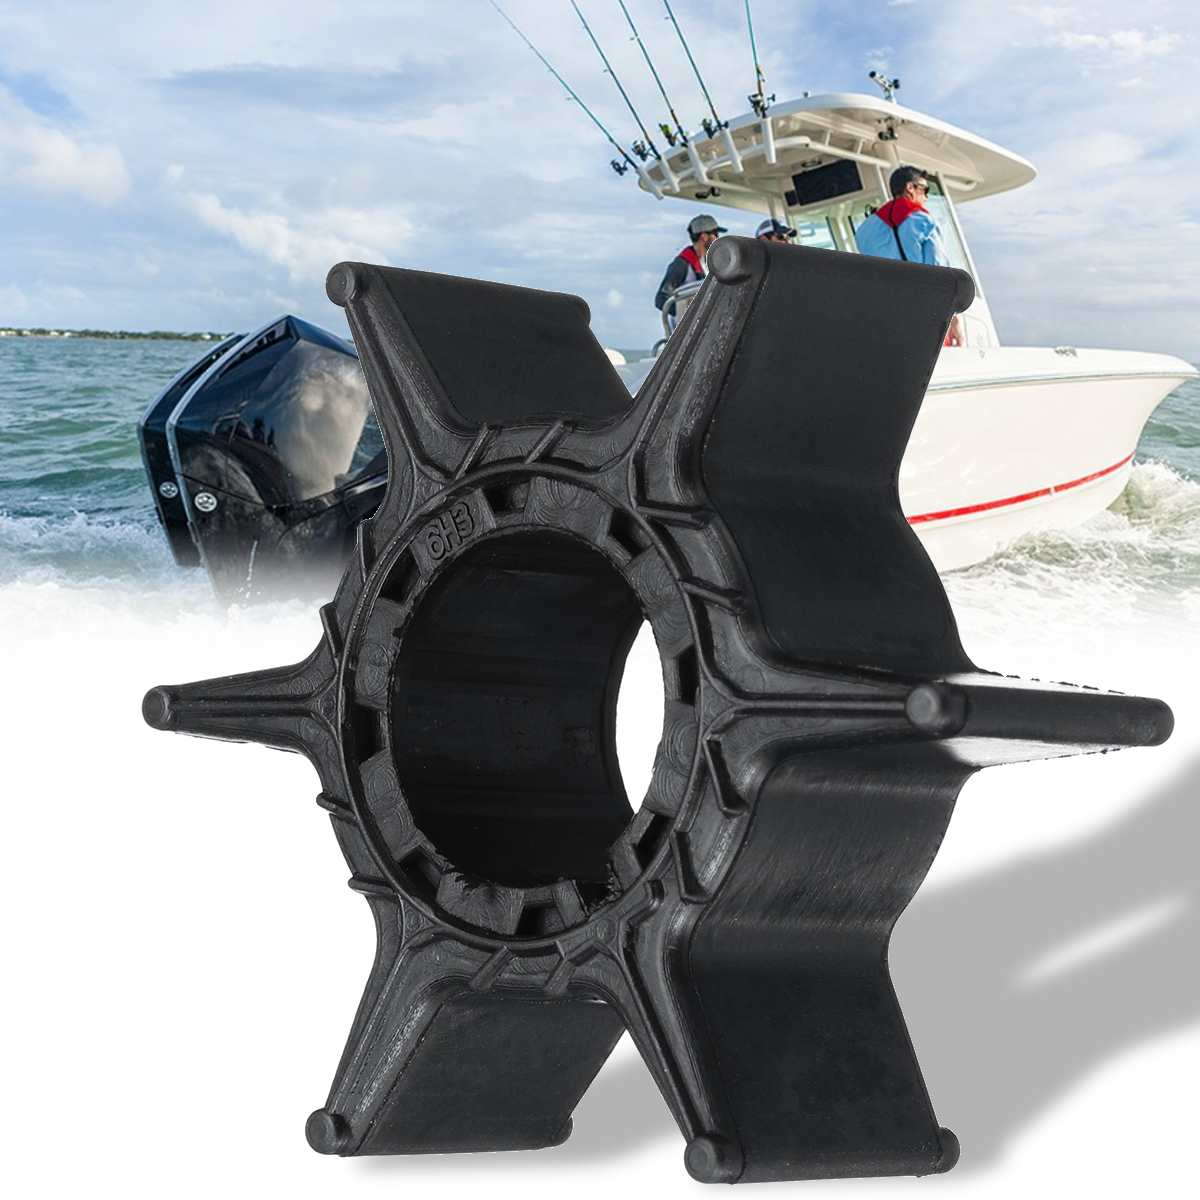 6H3-44352-00 Replacement Water Pump Impeller For Yamaha 40-60HP Outboard Motor Diameter 52mm Accessories 6 Blades Black Rubber